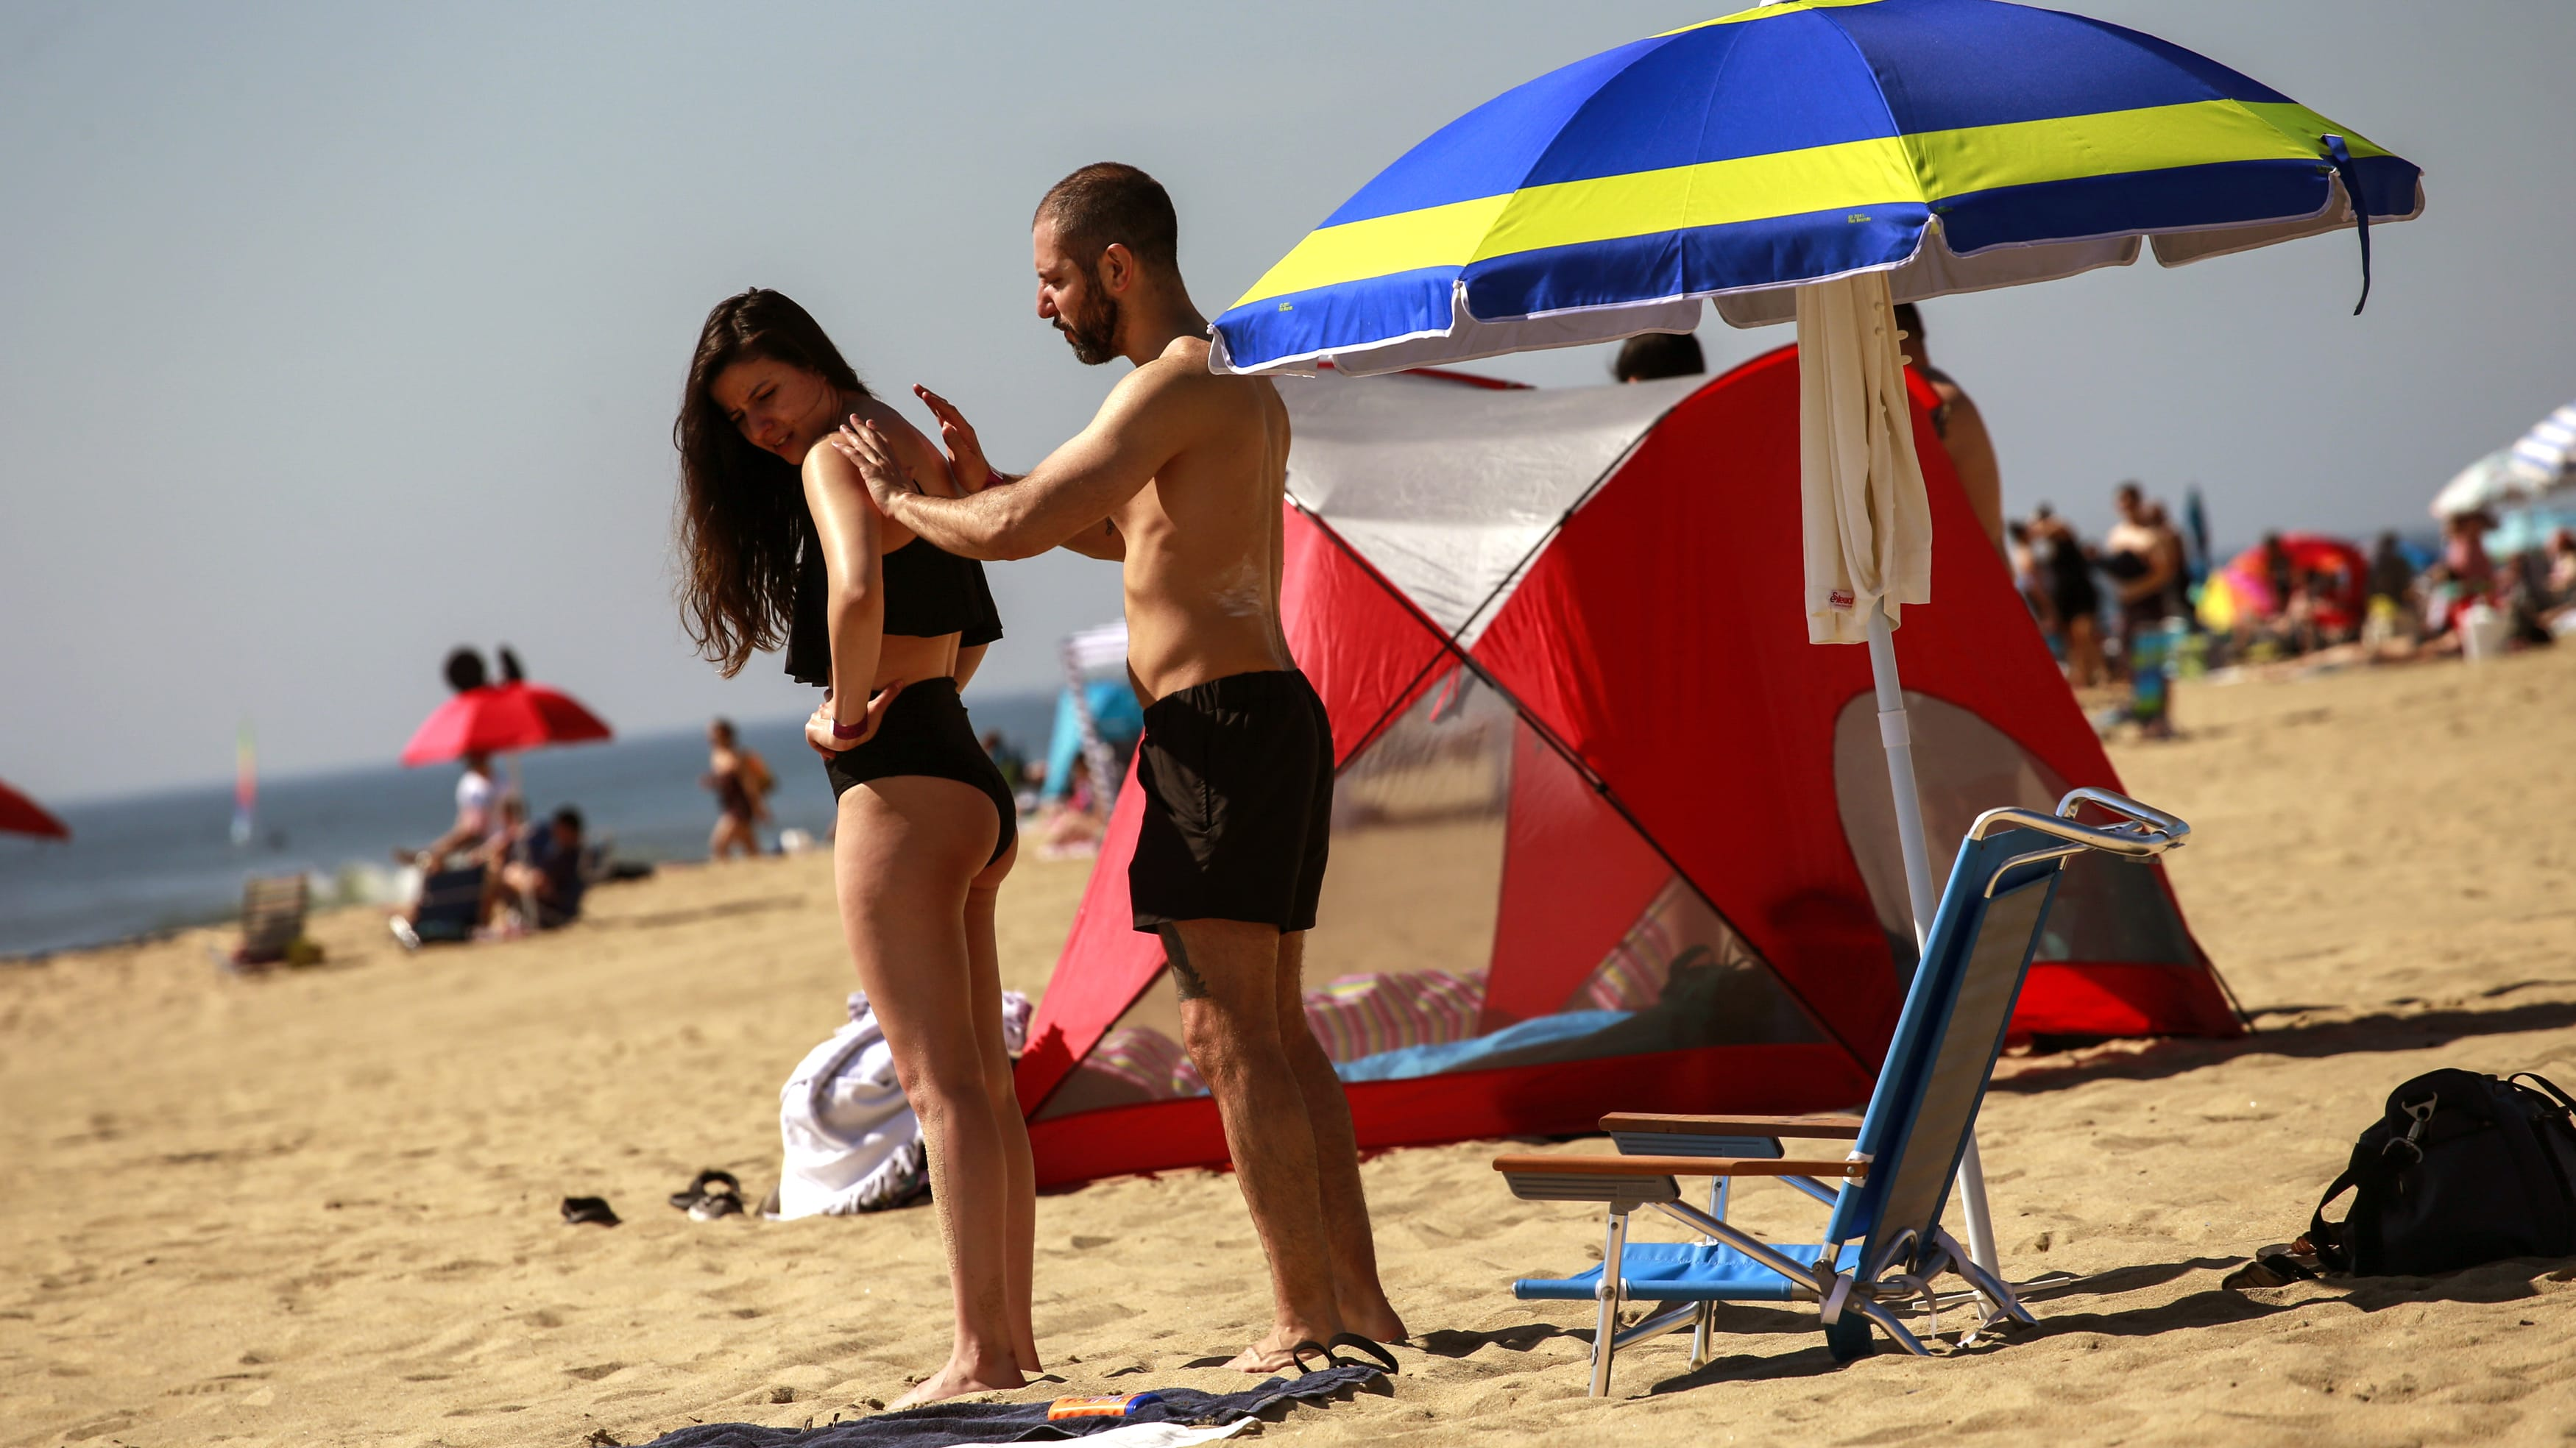 ASBURY PARK, NJ - MAY 26:  A man applies sunscreen to a woman as they visit the beach during Memorial Day weekend on May 26, 2019 in Asbury Park, New Jersey. Memorial Day is the unofficial start of summer and this year New Jersey has banned smoking and vaping on nearly every public beach under tougher new restrictions. (Photo by Kena Betancur/Getty Images)